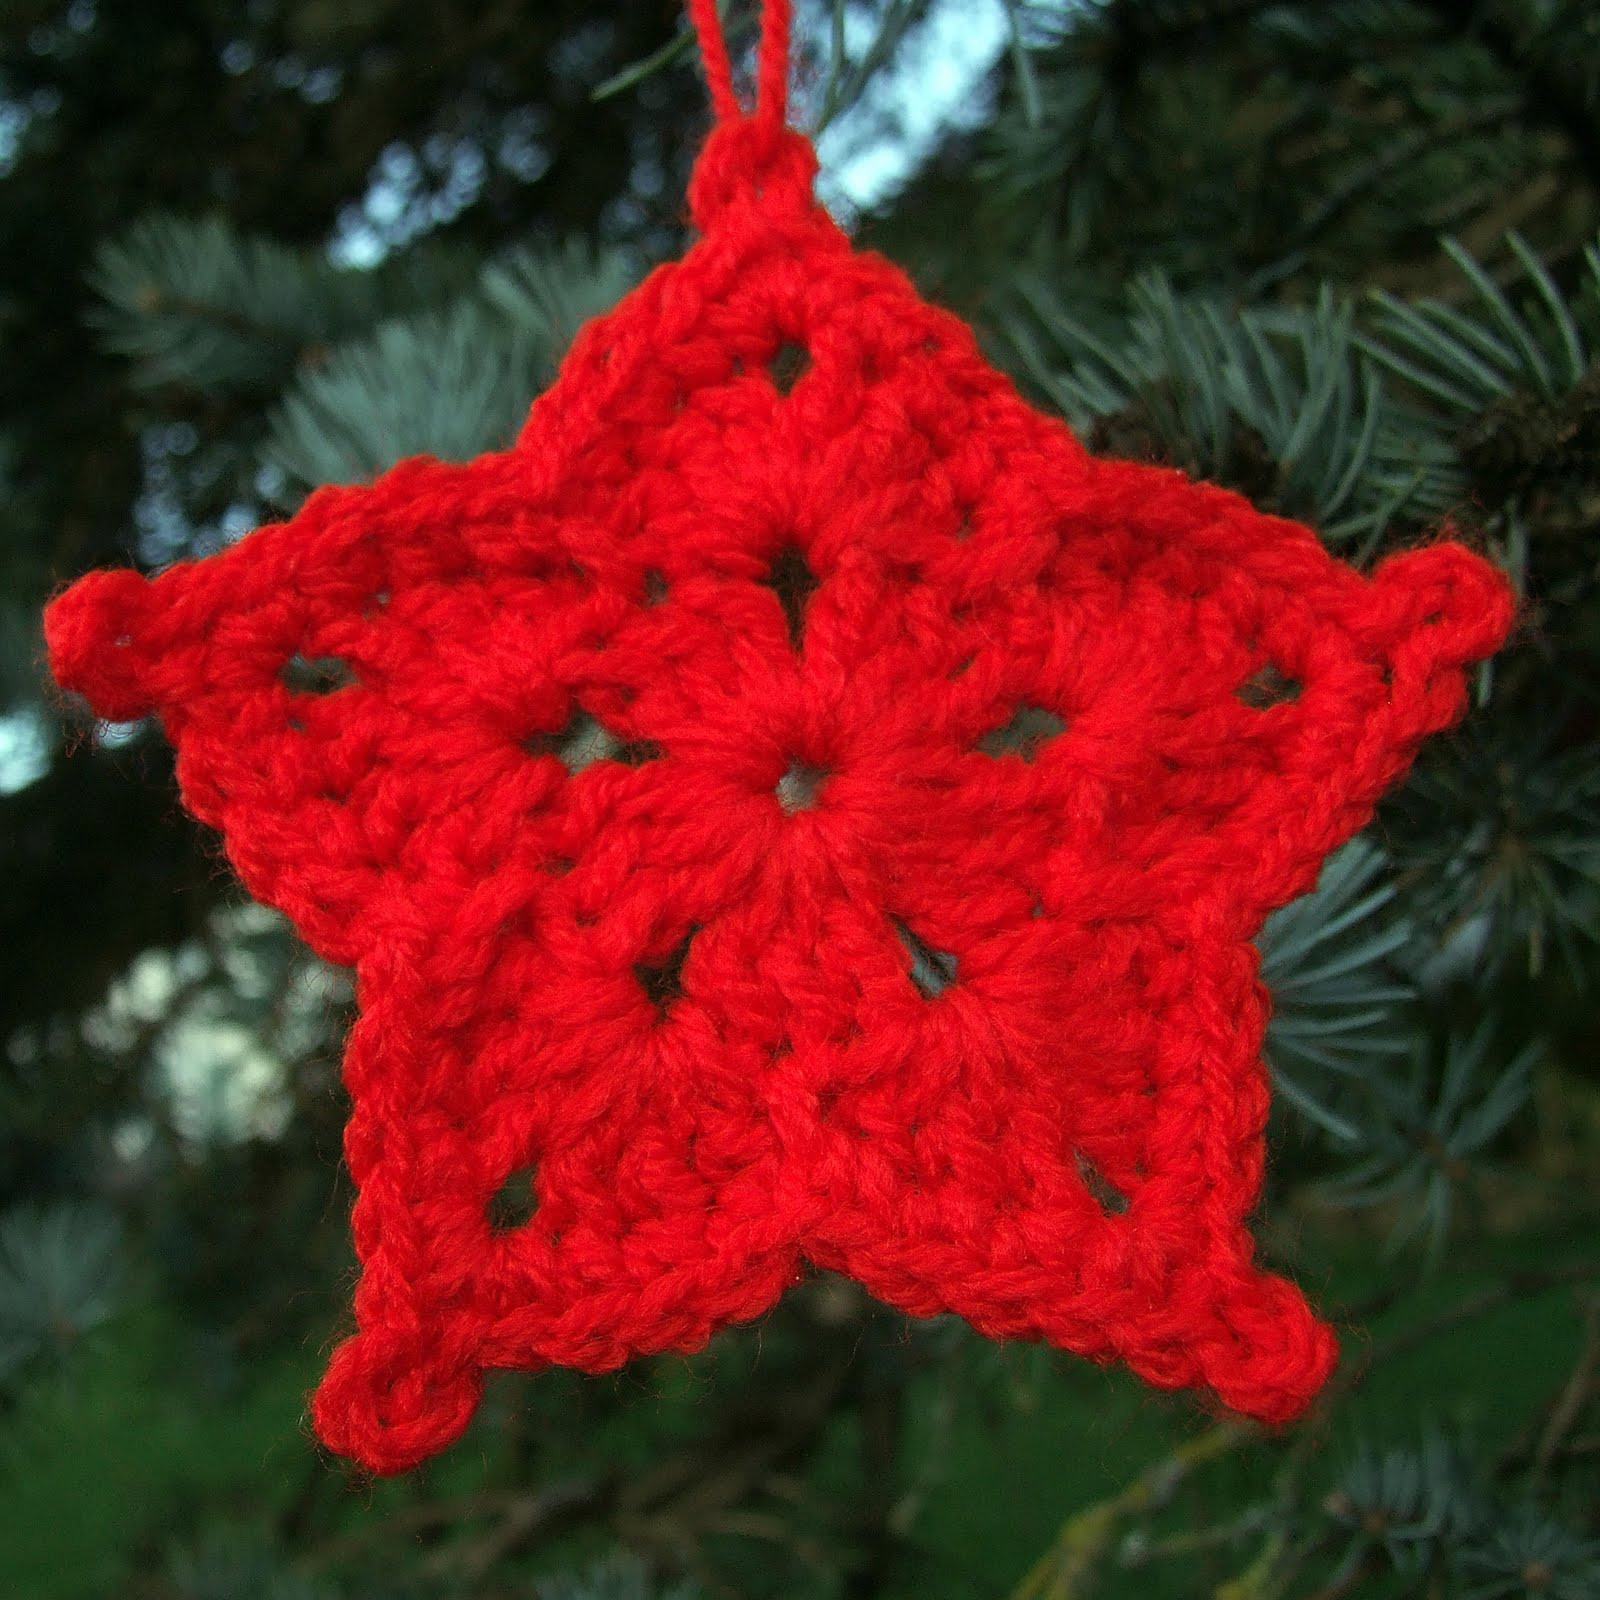 Christmas Crochet Patterns Fresh Crafting Life In Eire Christmas Decorations Crochet Of Brilliant 49 Ideas Christmas Crochet Patterns